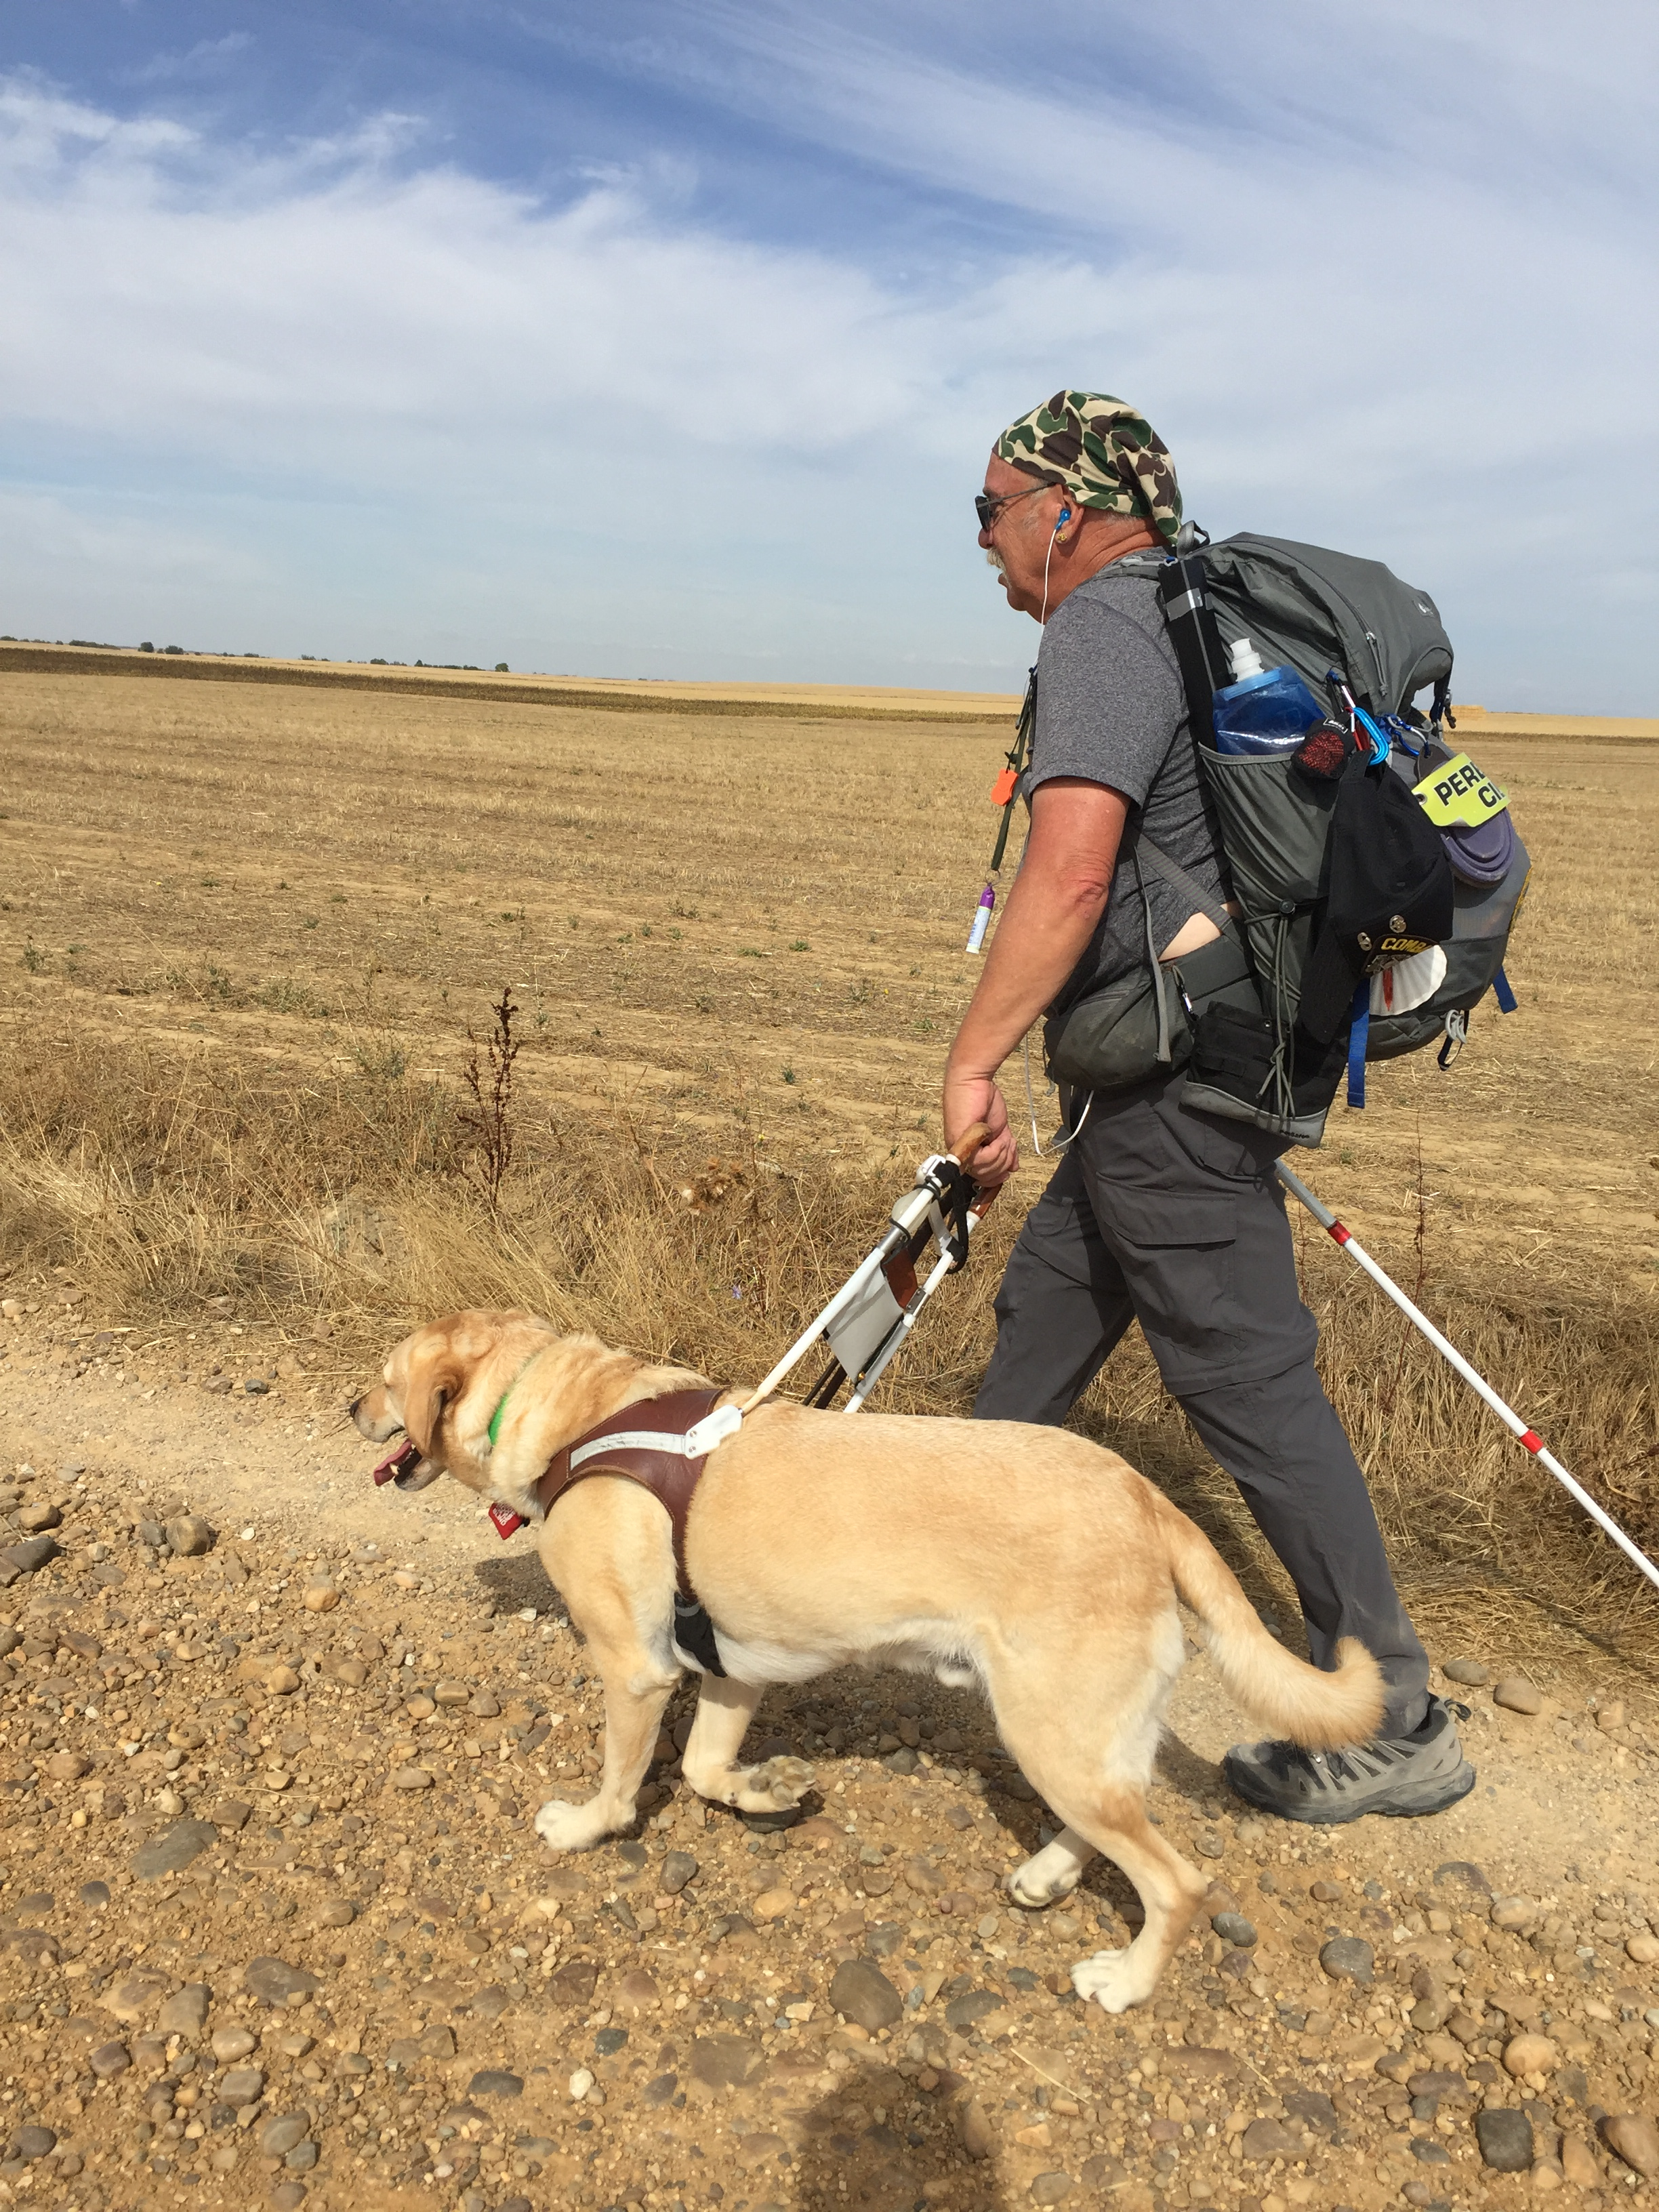 Phil (wearing a backpack) walks mid-stride with guide dog Jeff (yellow Lab) down a rocky path.